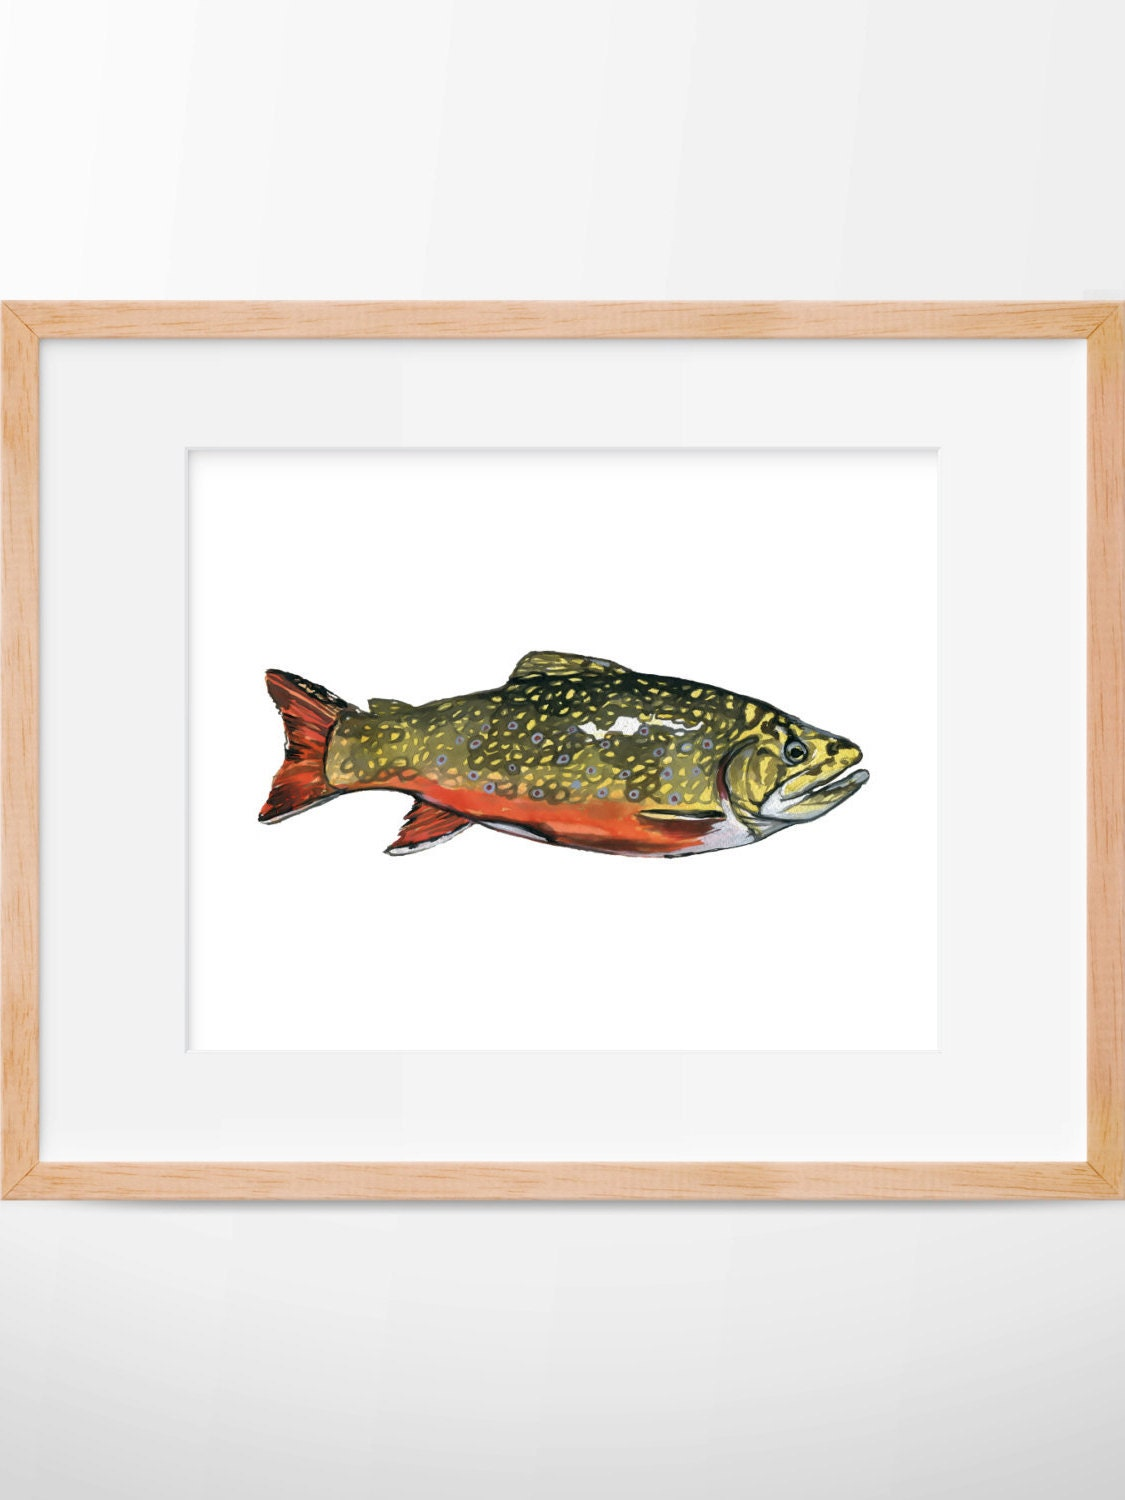 Brook Trout Trout Print Hunting And Fishing Fly Fishing Home Decorators Catalog Best Ideas of Home Decor and Design [homedecoratorscatalog.us]